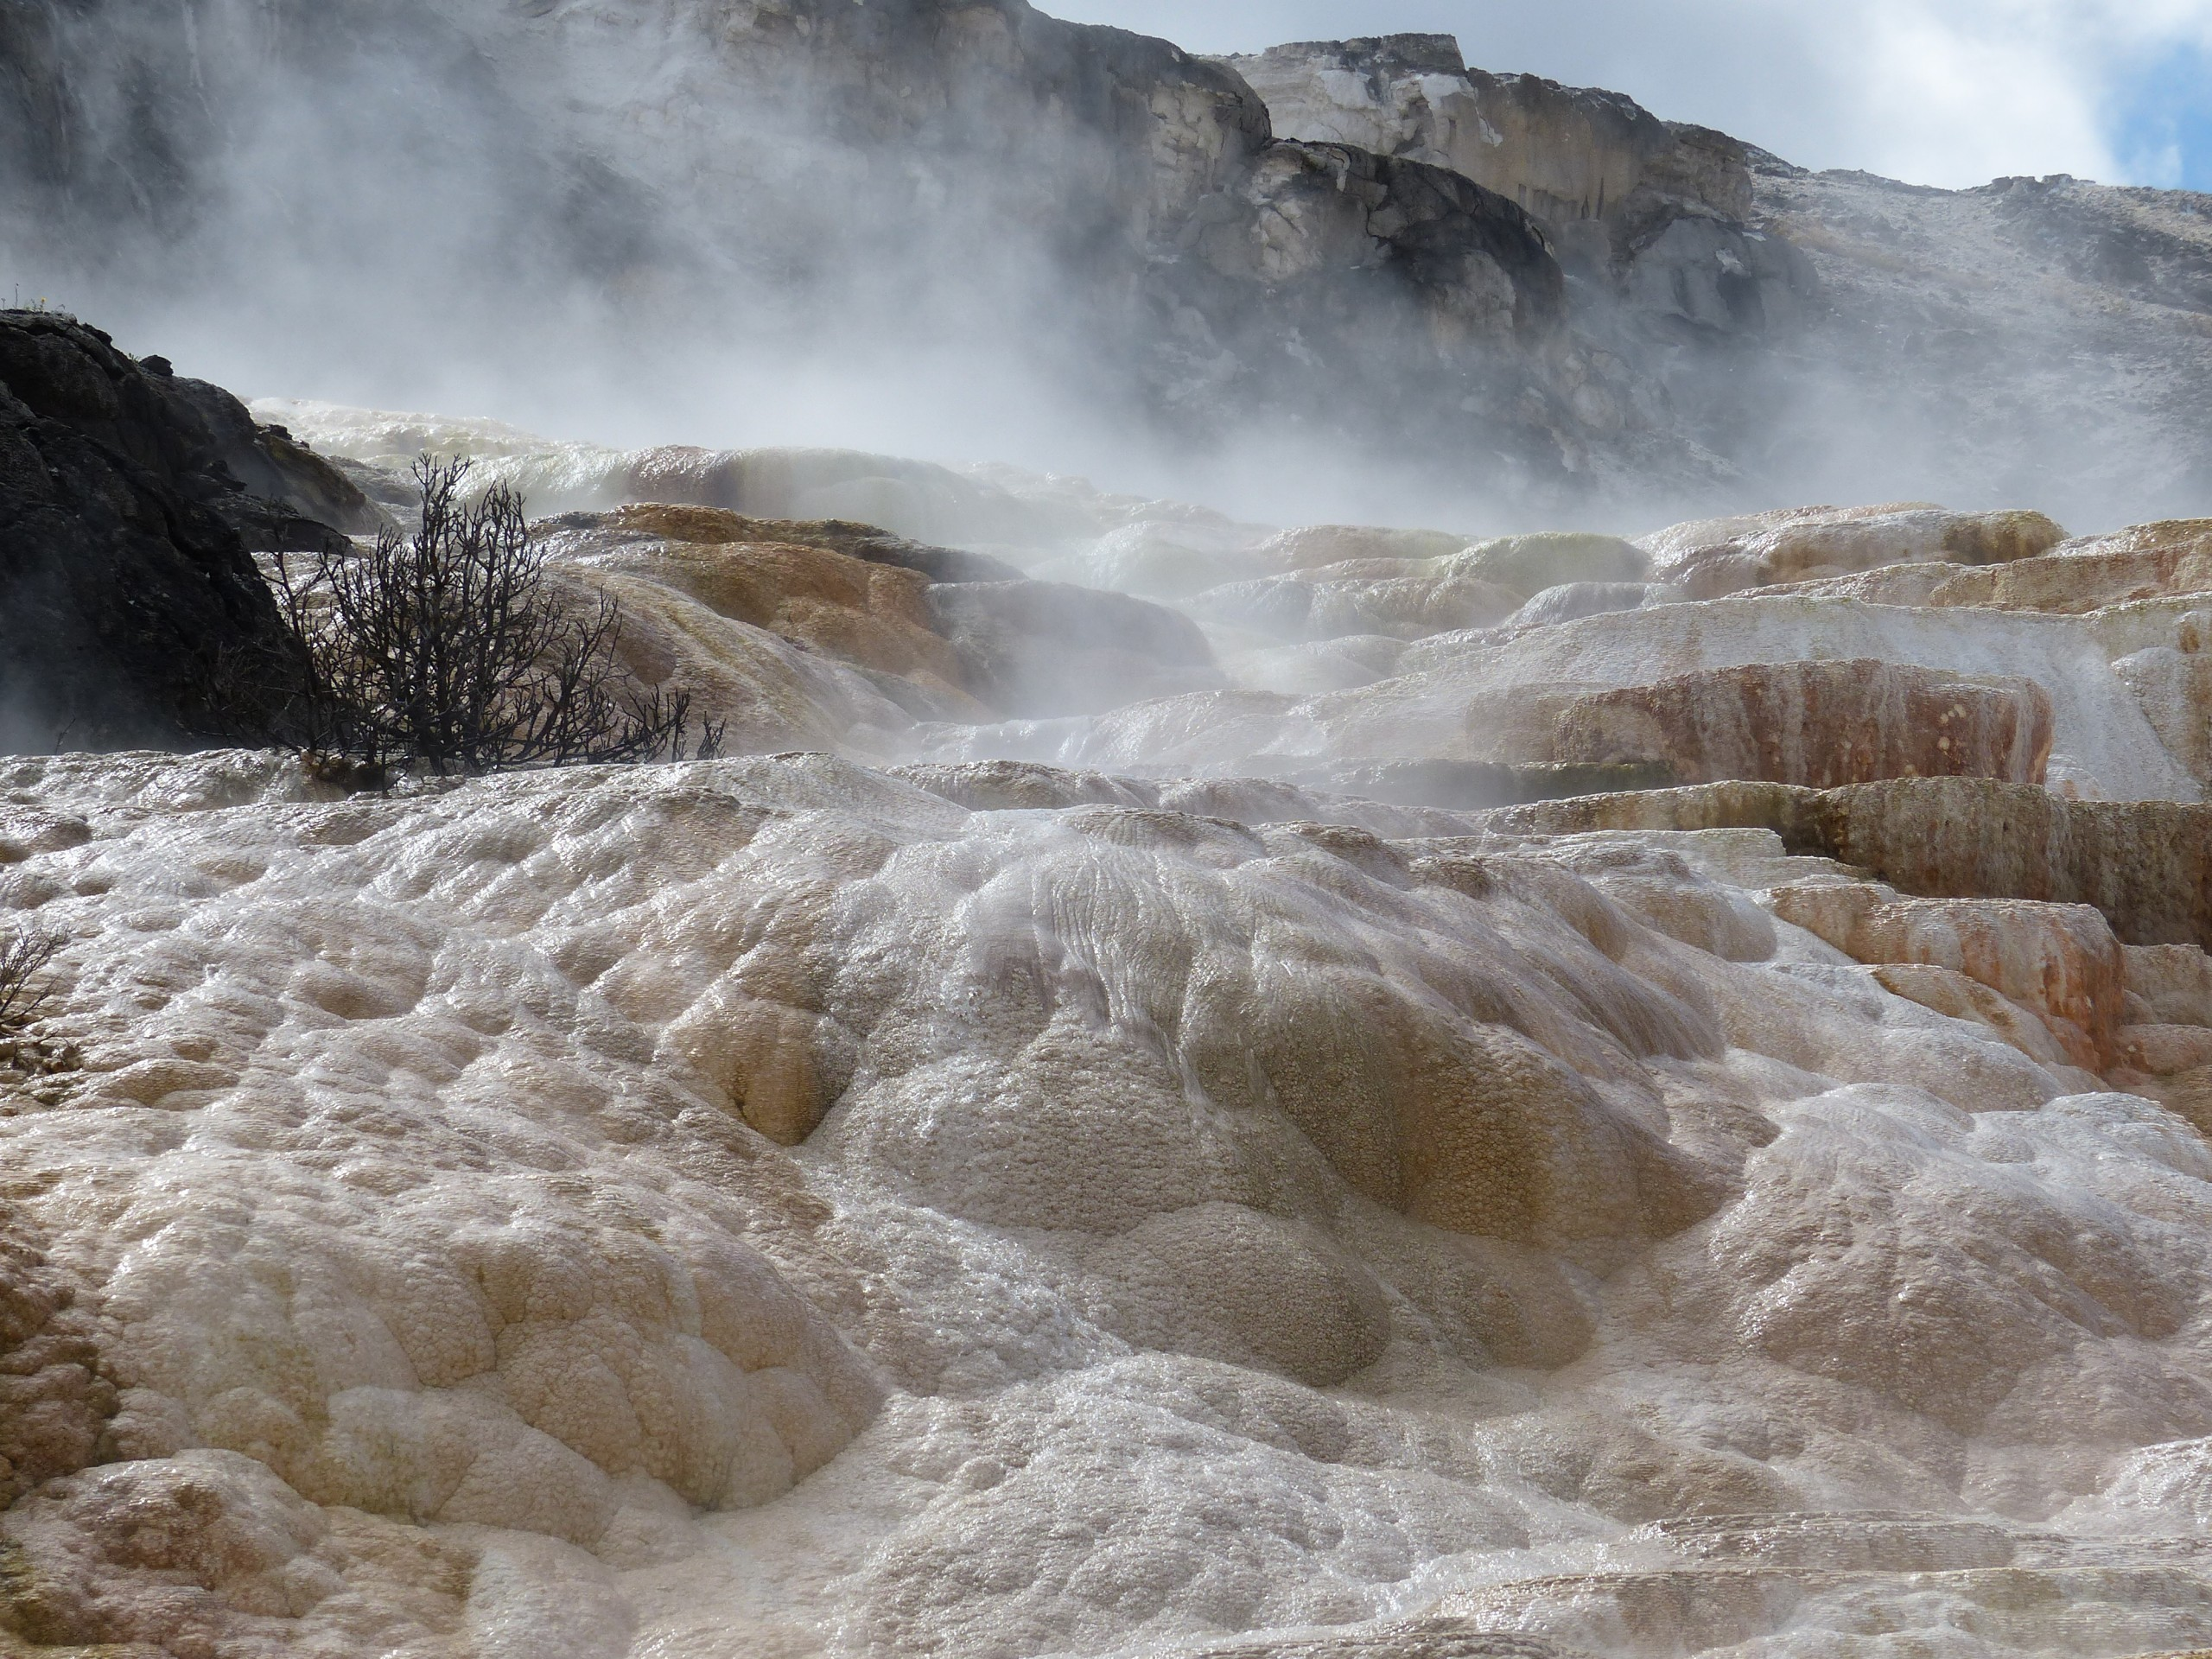 De kalkterrassen van Mammoth Hot Springs